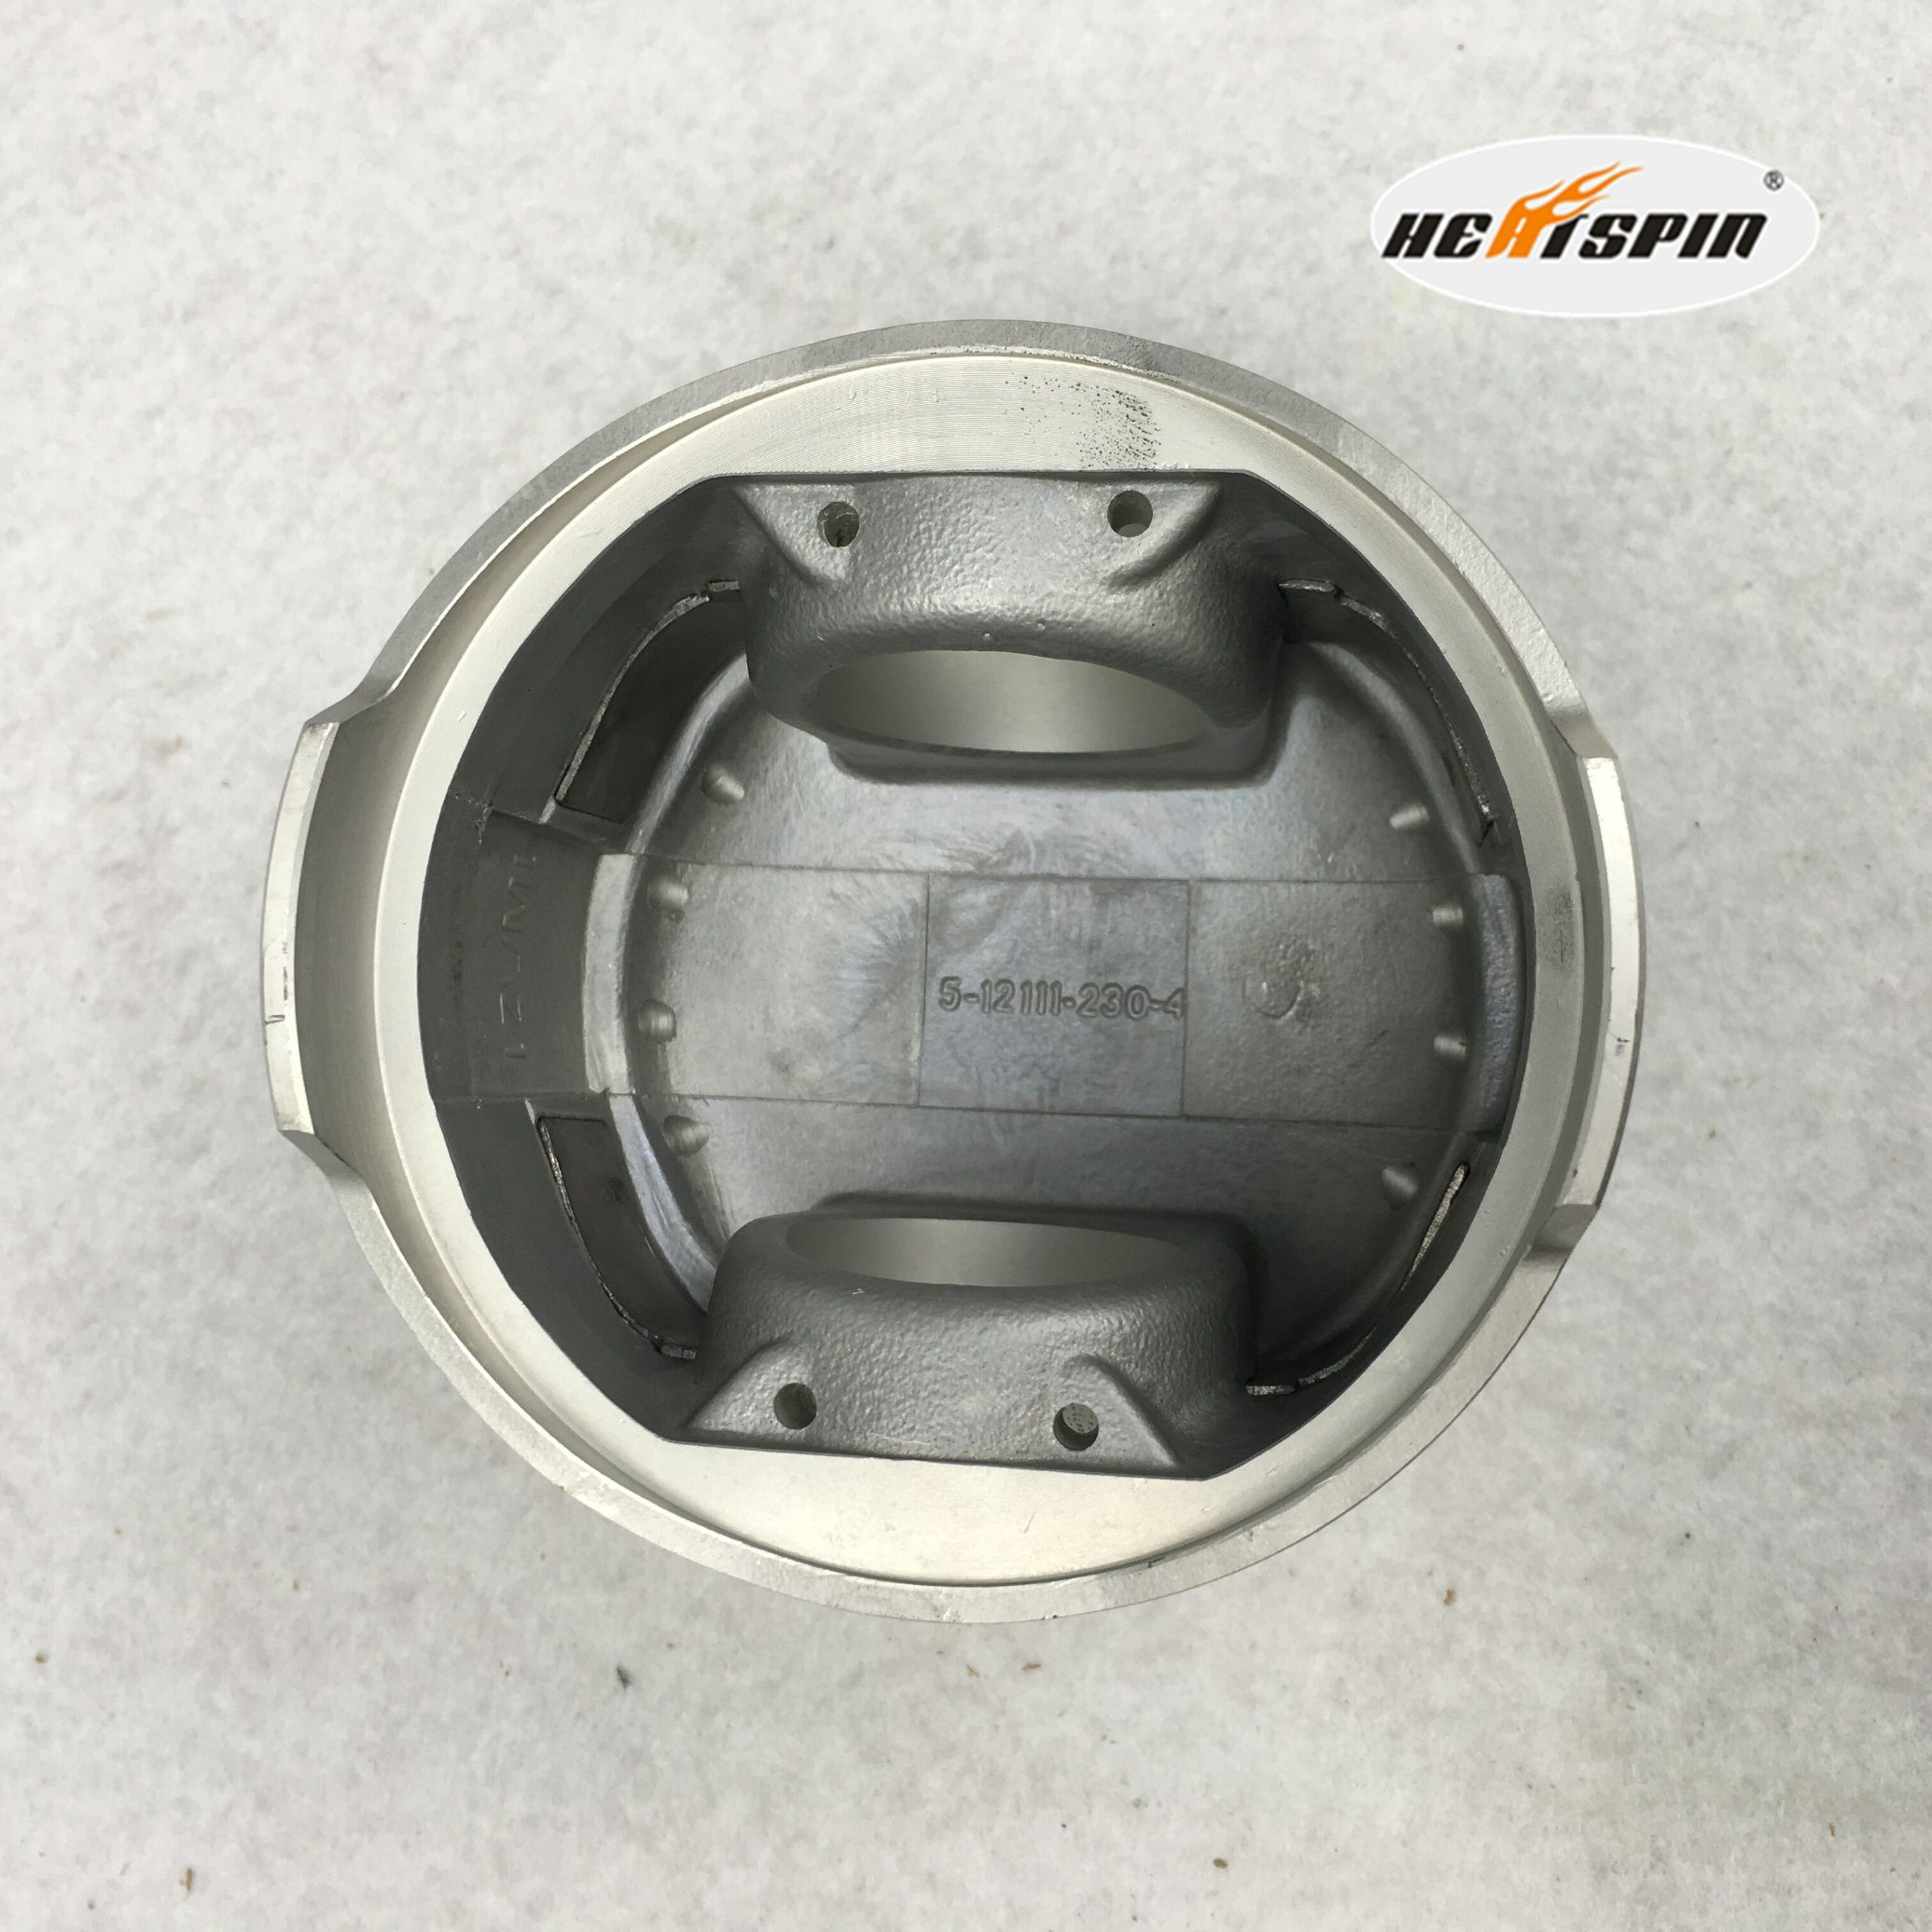 Isuzu 4bc2 Alfin Piston with One Year Warranty OEM 5-12111-230-4 pictures & photos